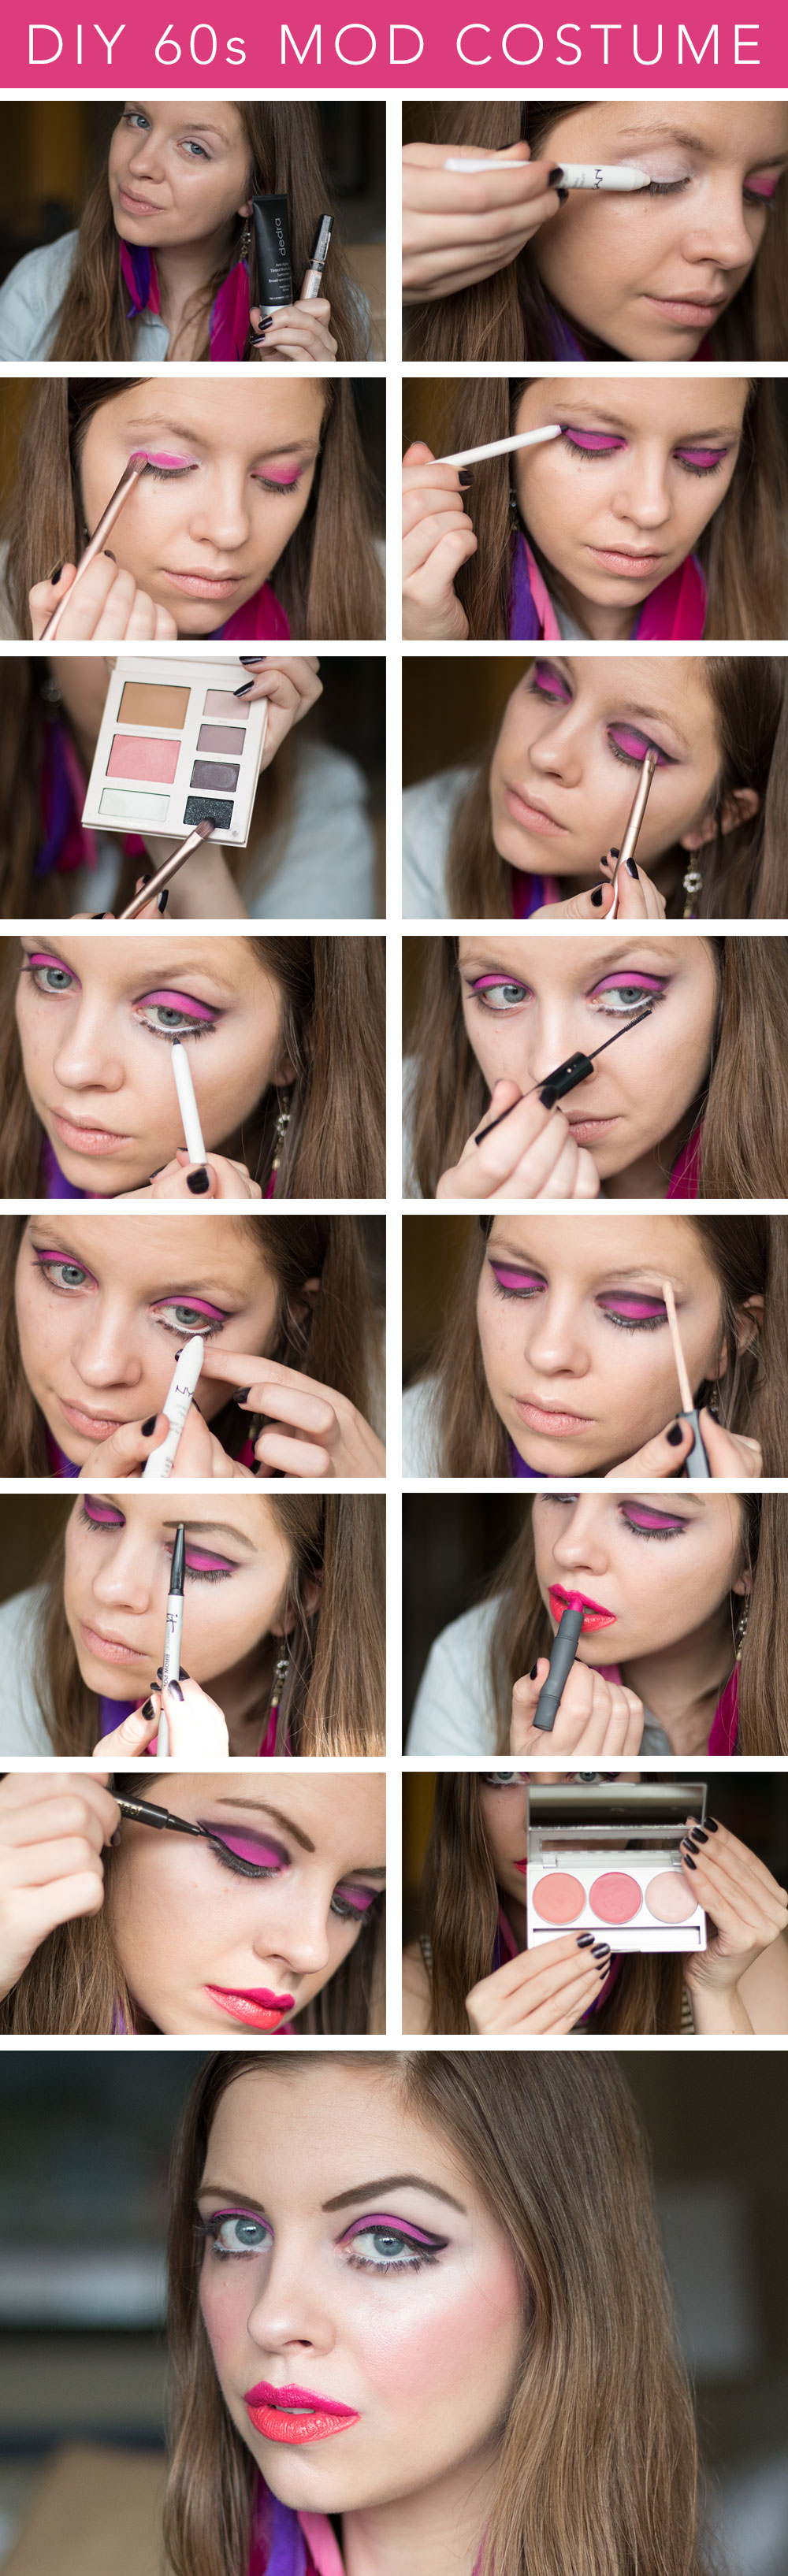 DIY 60s Mod Costume for Twiggy Inspired Look (Step by Step Makeup Tutorial) // hellorigby seattle beauty blog